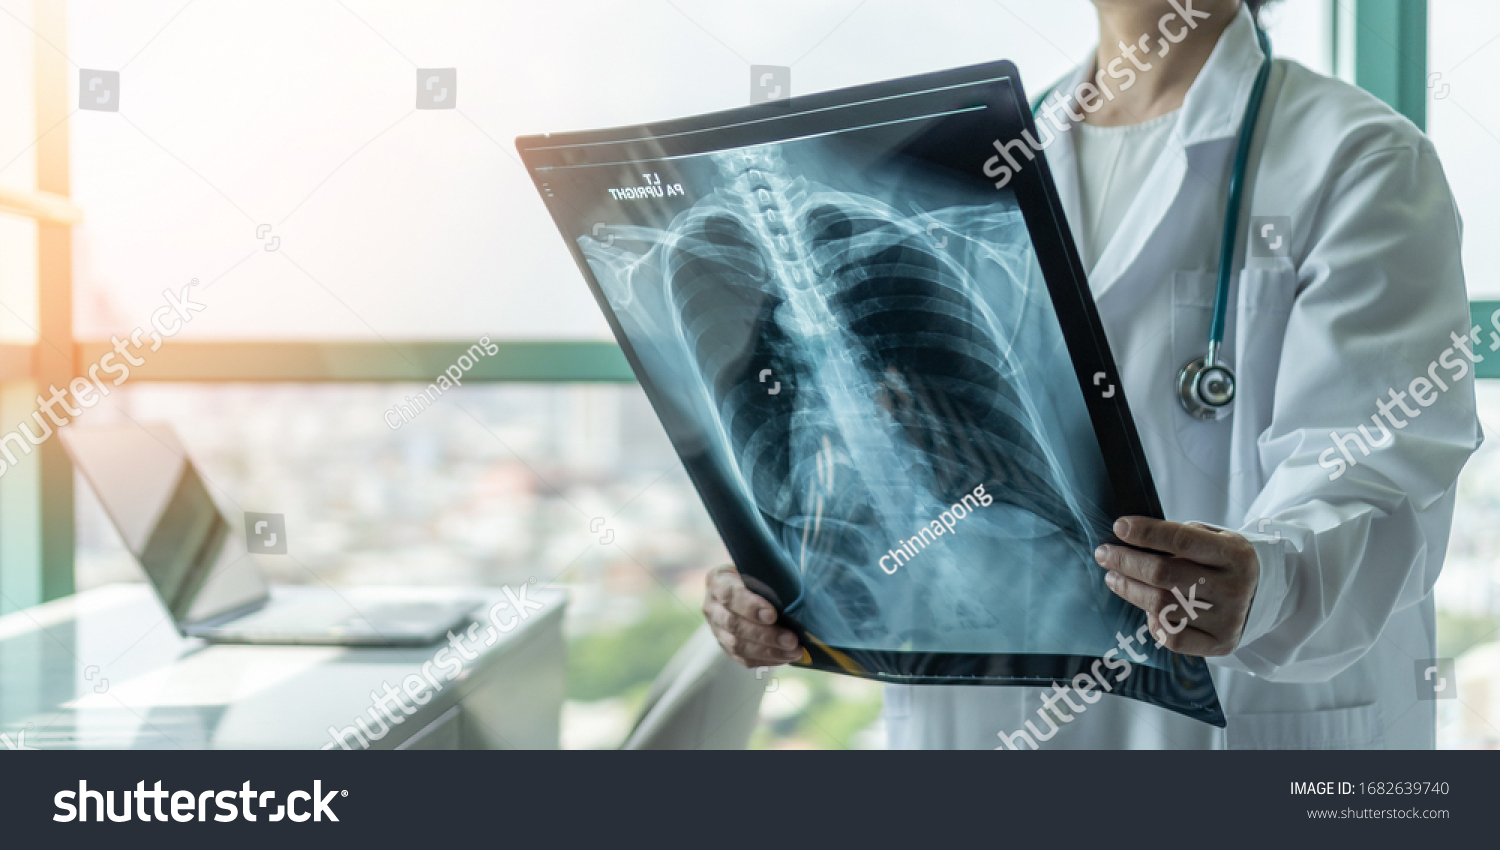 Doctor diagnosing patient's health on asthma, lung disease, COVID-19, coronavirus or bone cancer illness with radiological chest x-ray film for medical healthcare hospital service